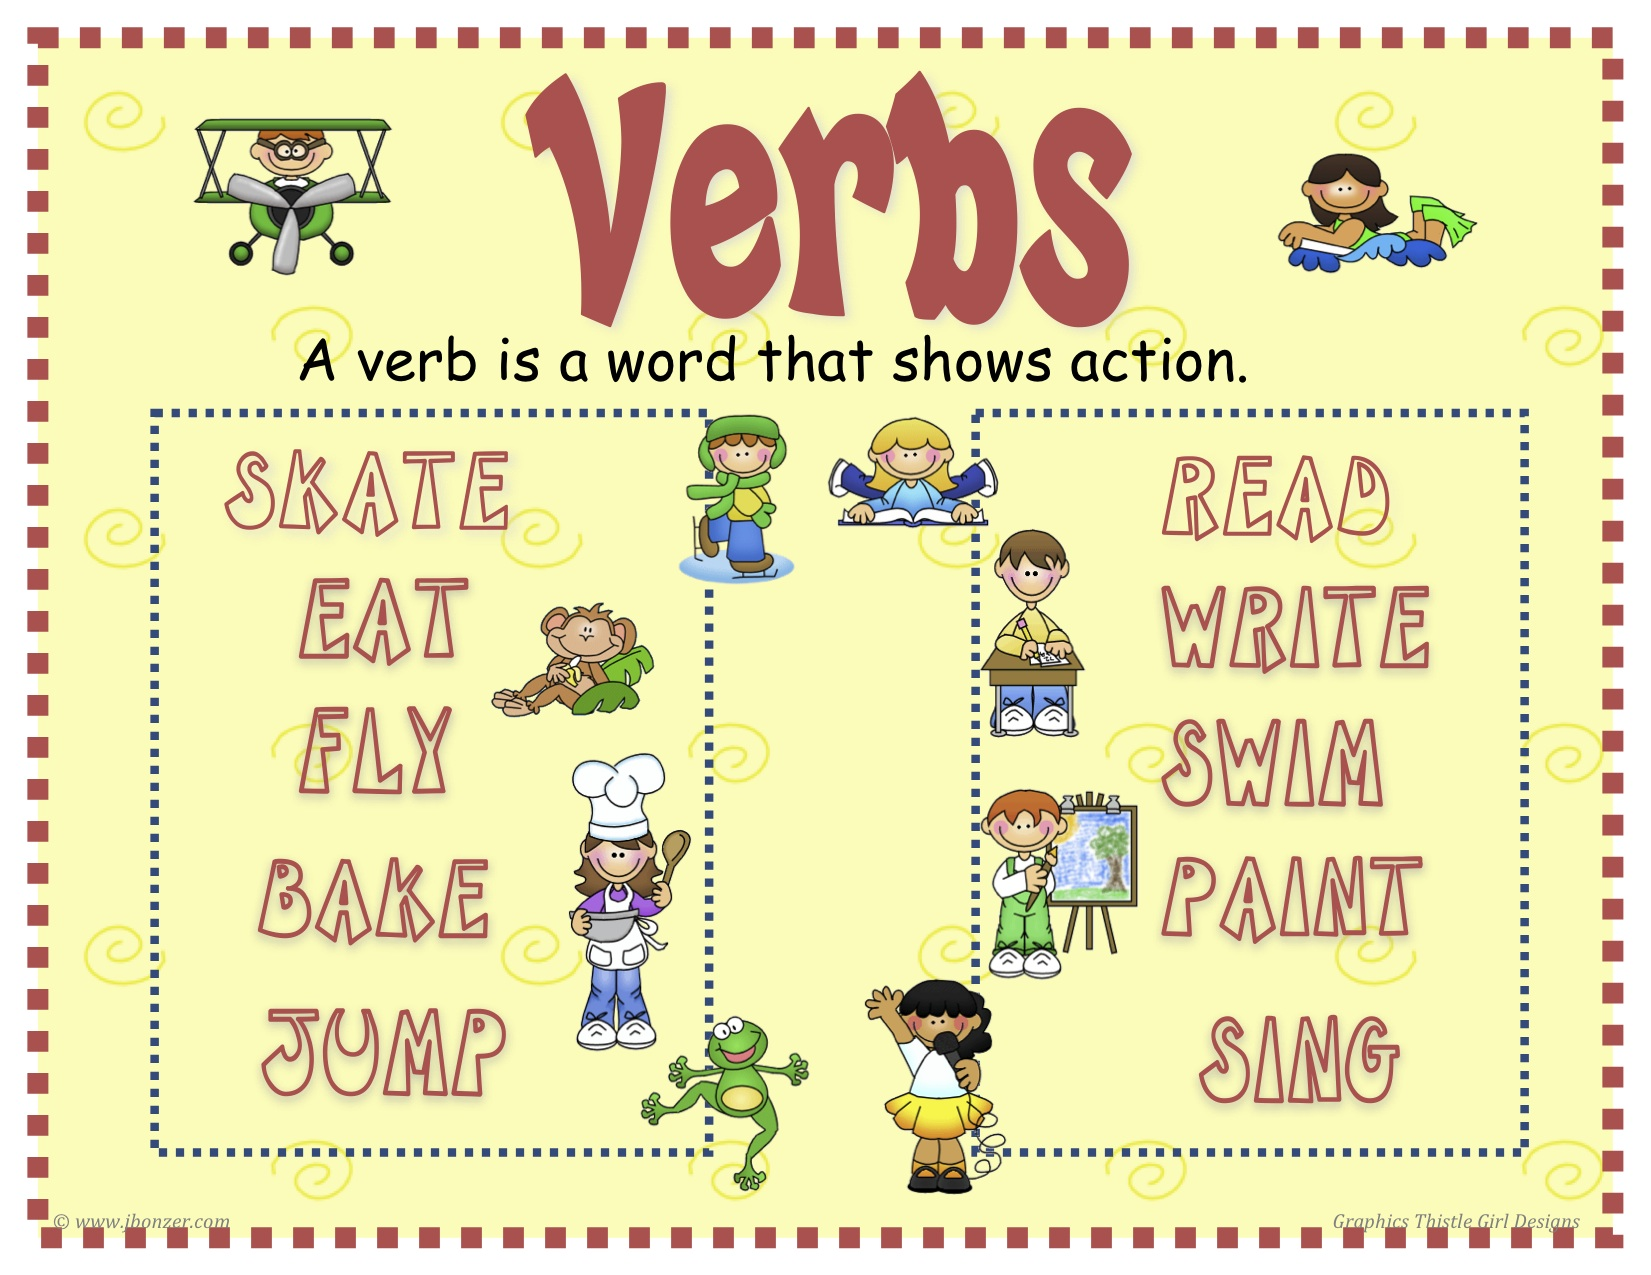 ... Worksheets Spanish As Well As Math Worksheet Place Value Second Grade